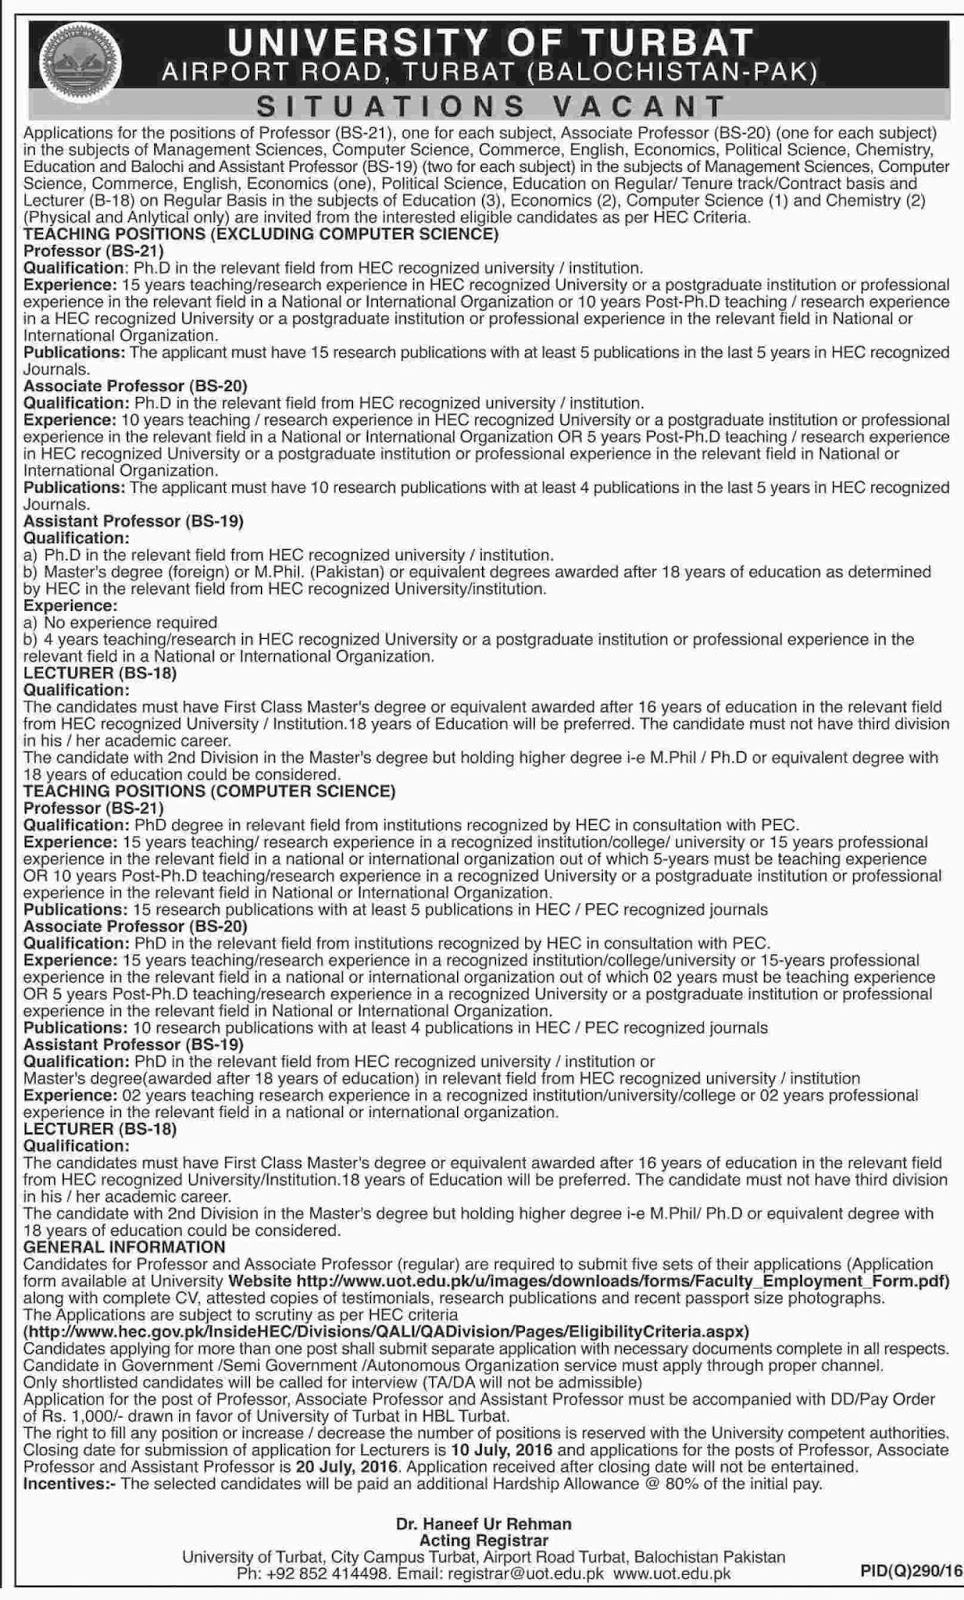 Jobs in Pakistan for Teachers at University of Turbat